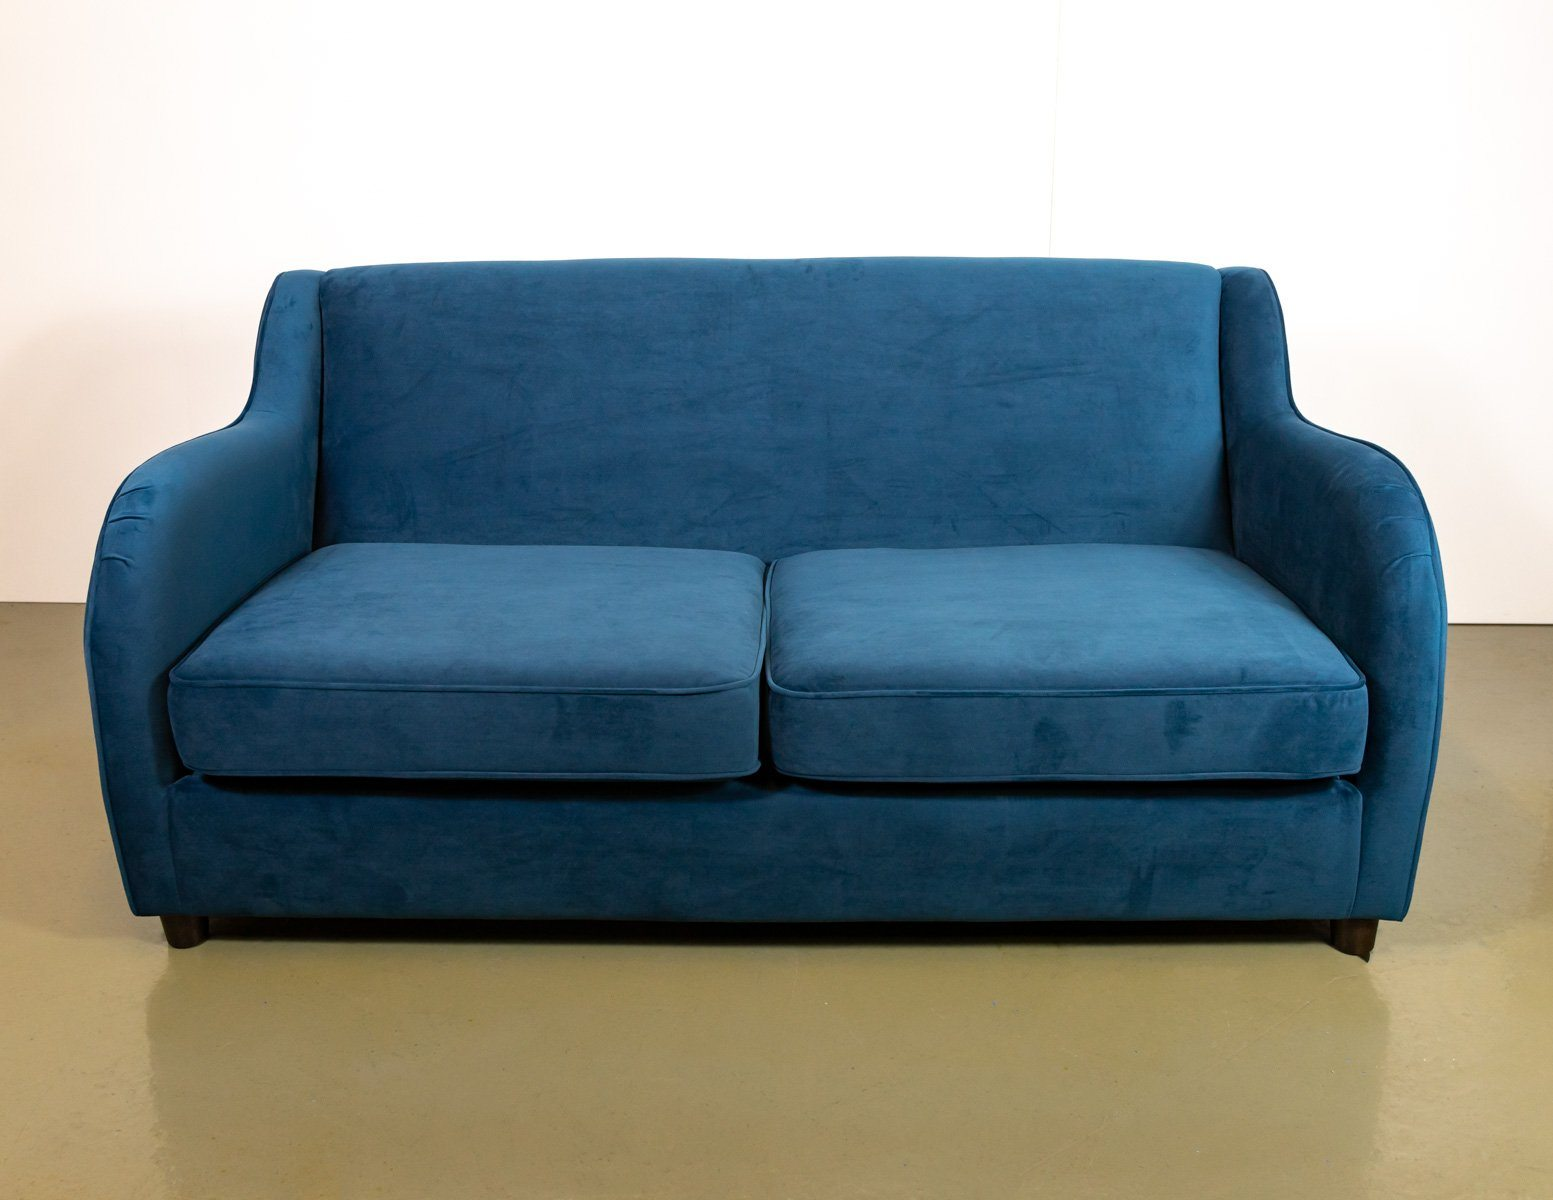 Sofa Bed - Brand New Made.com Helena  3 Seater Sofa Bed